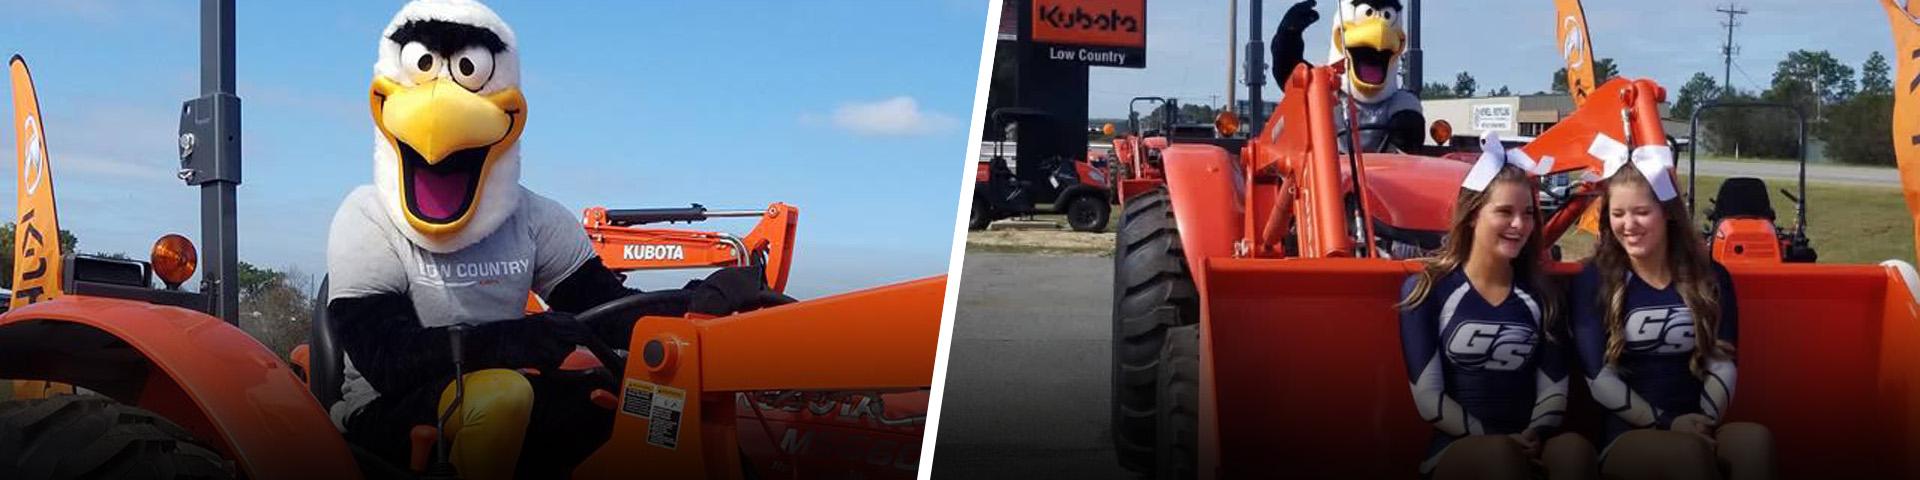 Low Country Kubota - Official Equipment Supplier of Georgia Southern Athletics - Statesboro, GA